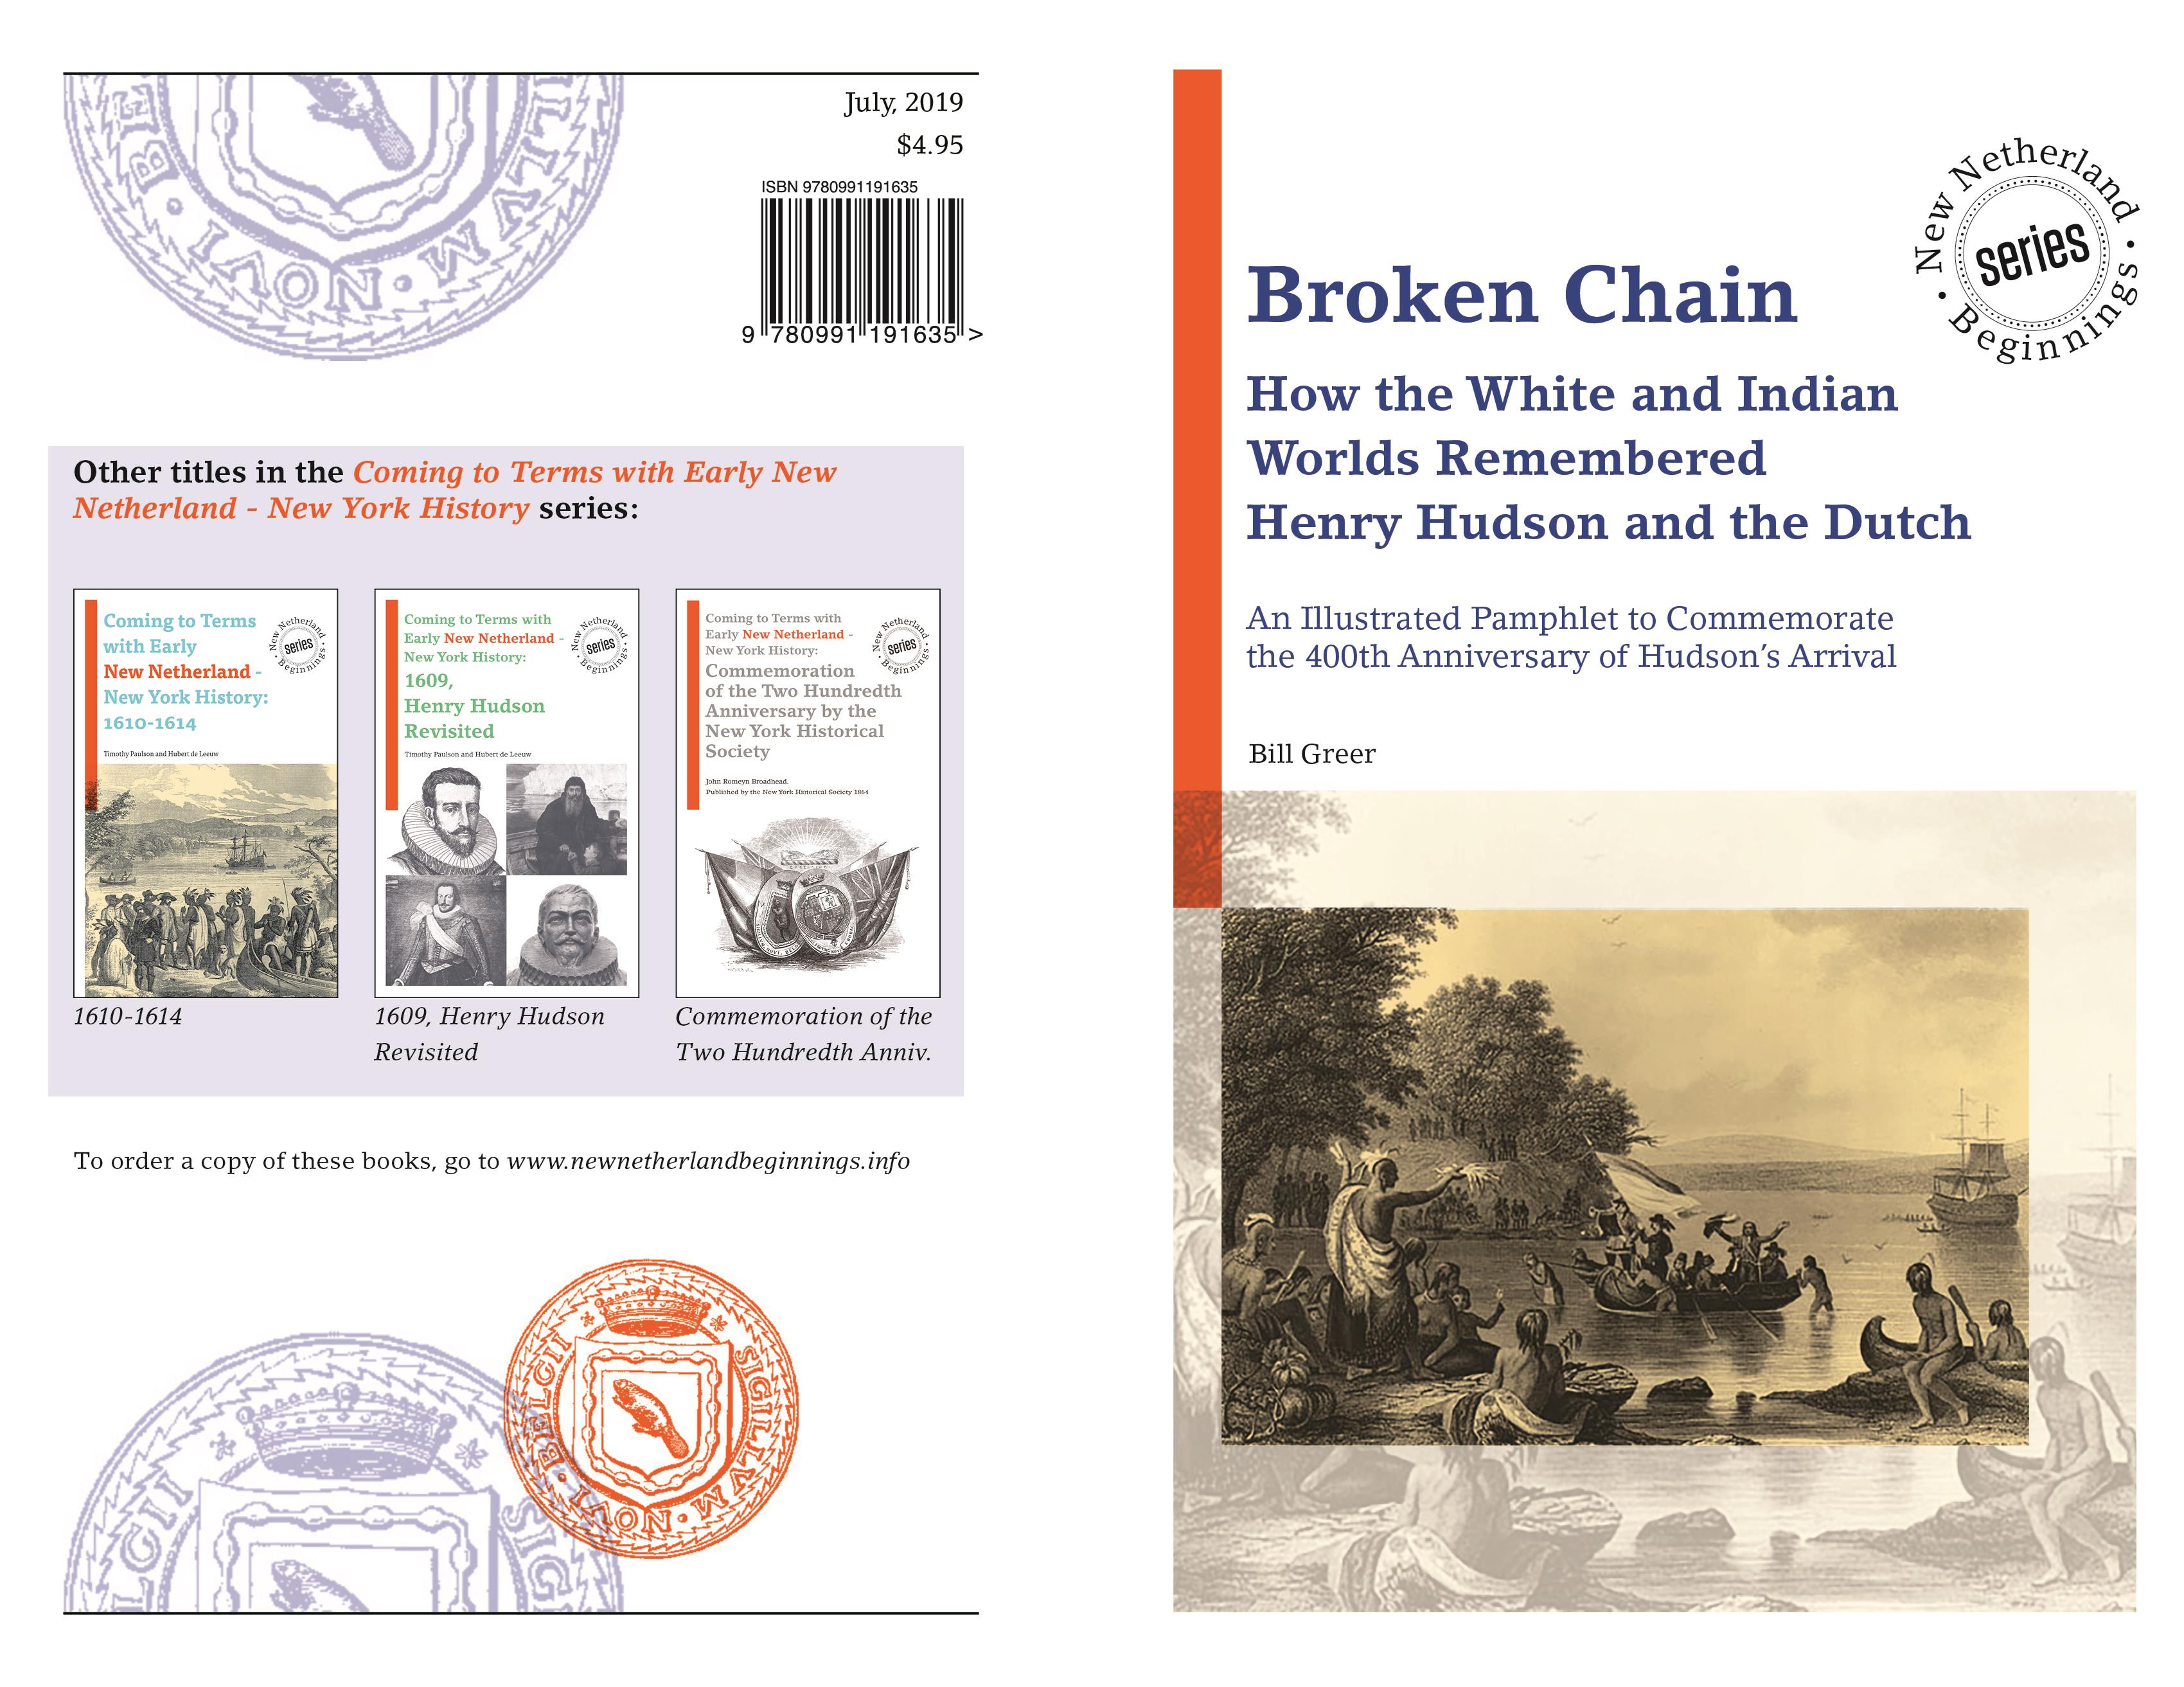 Broken Chain - How the White and Indian Worlds Remembered Henry Hudson and the Dutch cover image